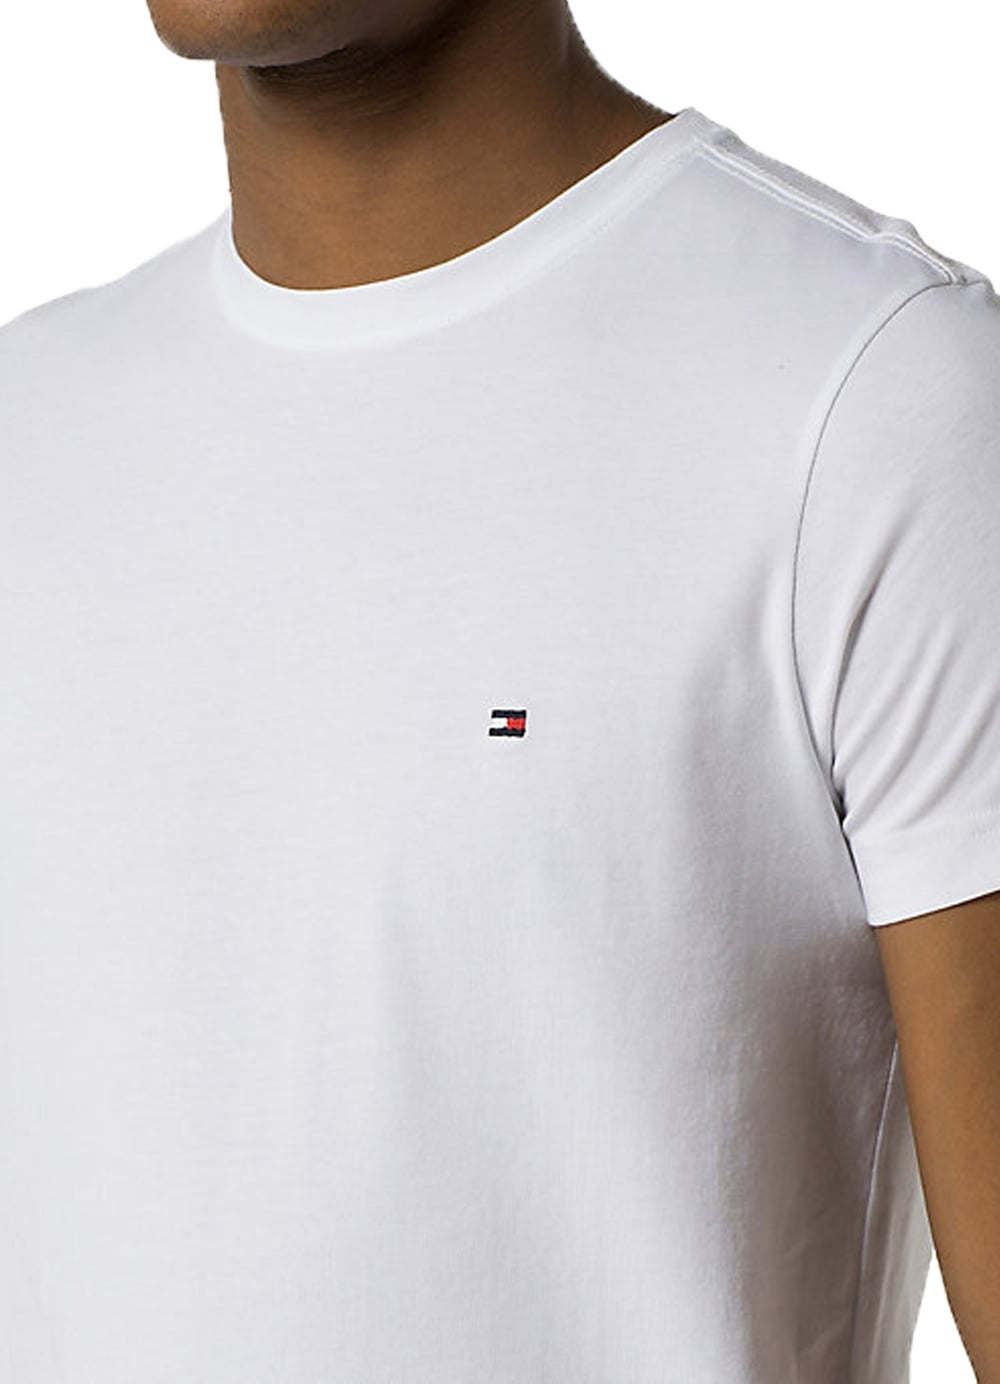 ee0b79c3 Tommy Hilfiger Core Stretch Slim Fit Short Sleeved T-Shirt Bright ...